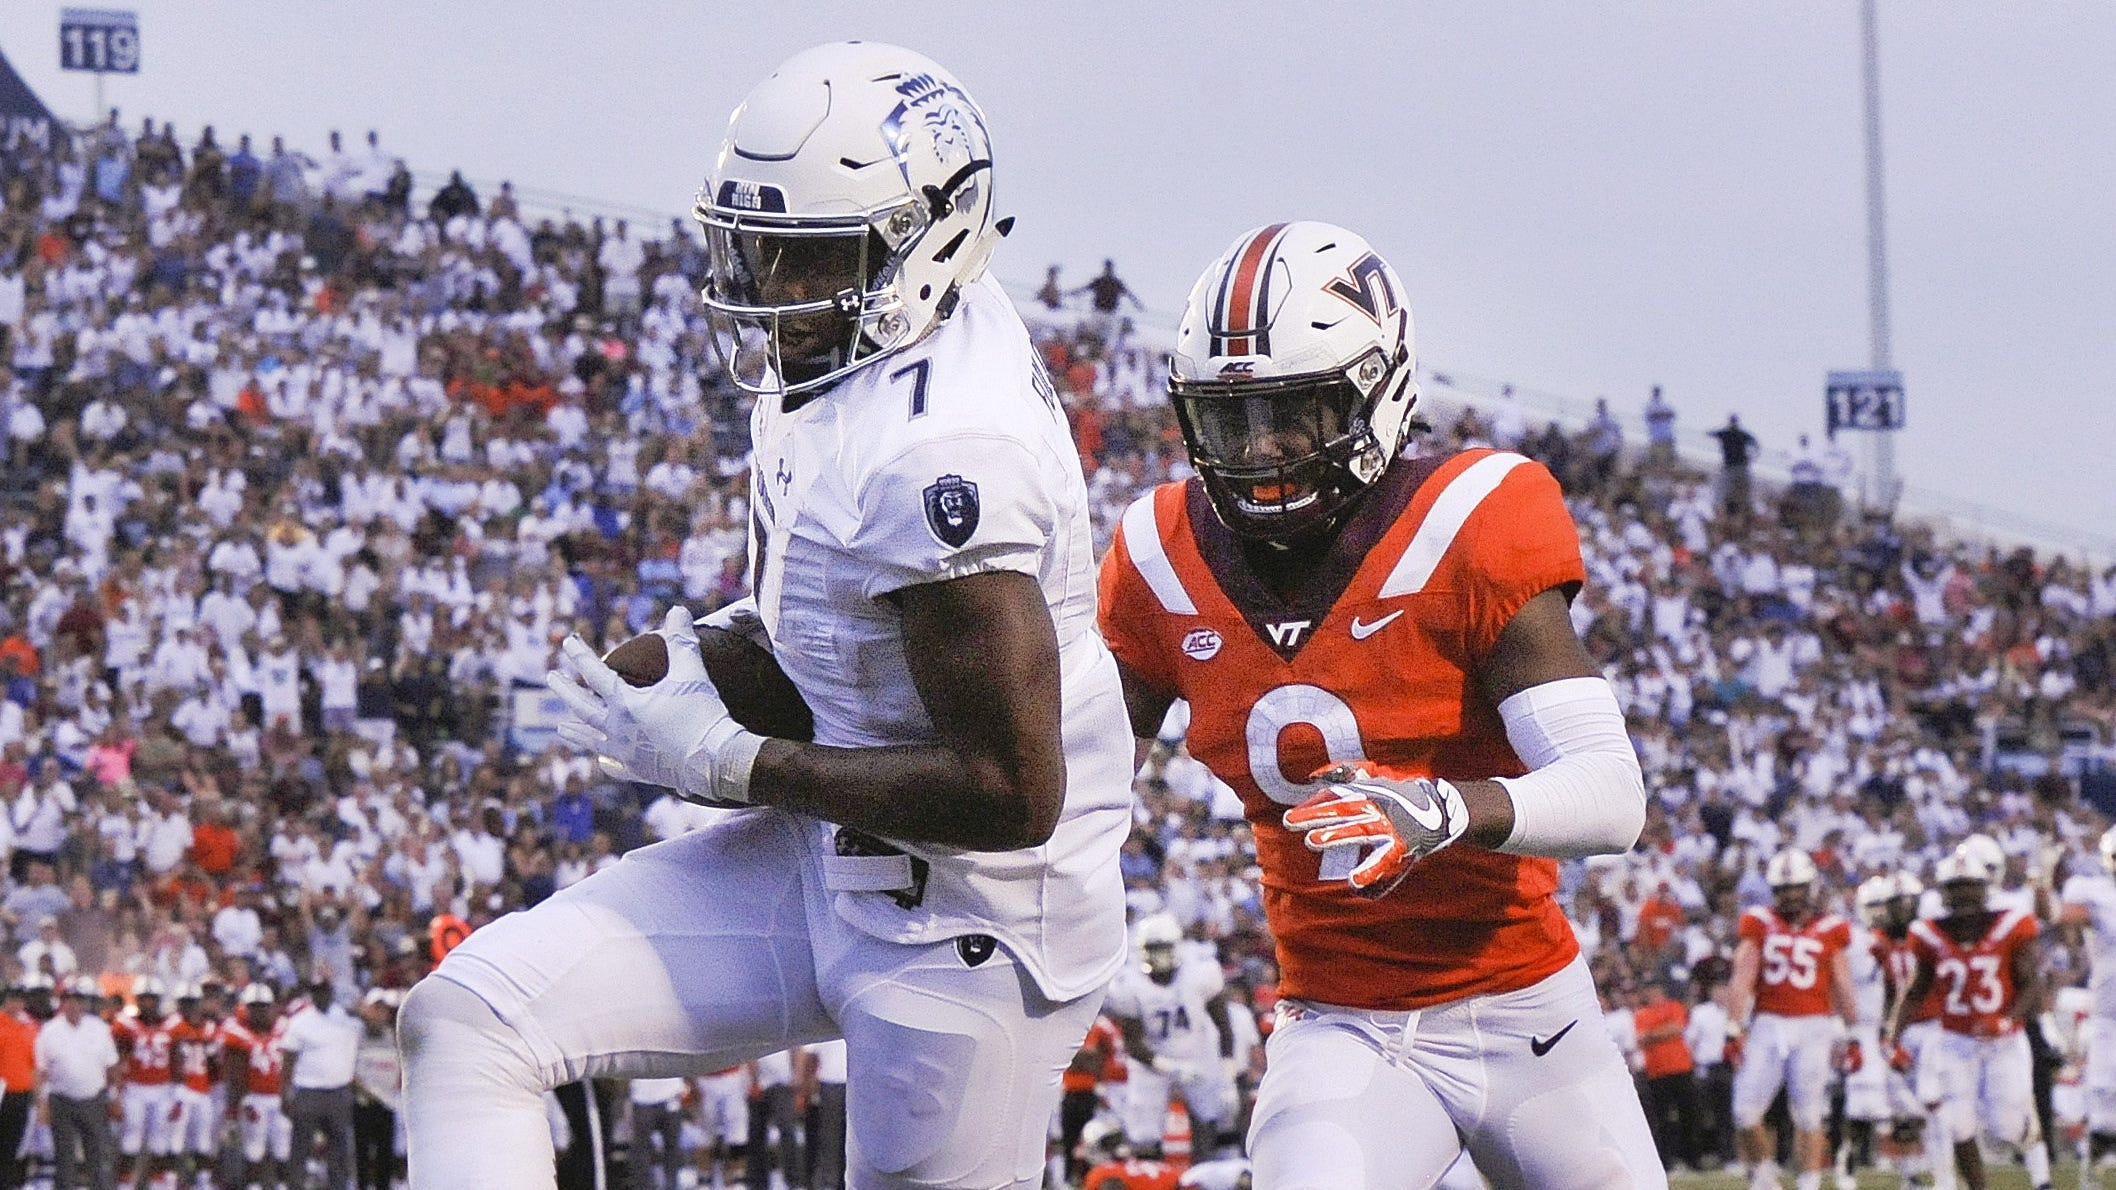 Old Dominion receiver Travis Fulgham (7) catches a second-half touchdown pass behind Virginia Tech defender Khalil Ladler (9).